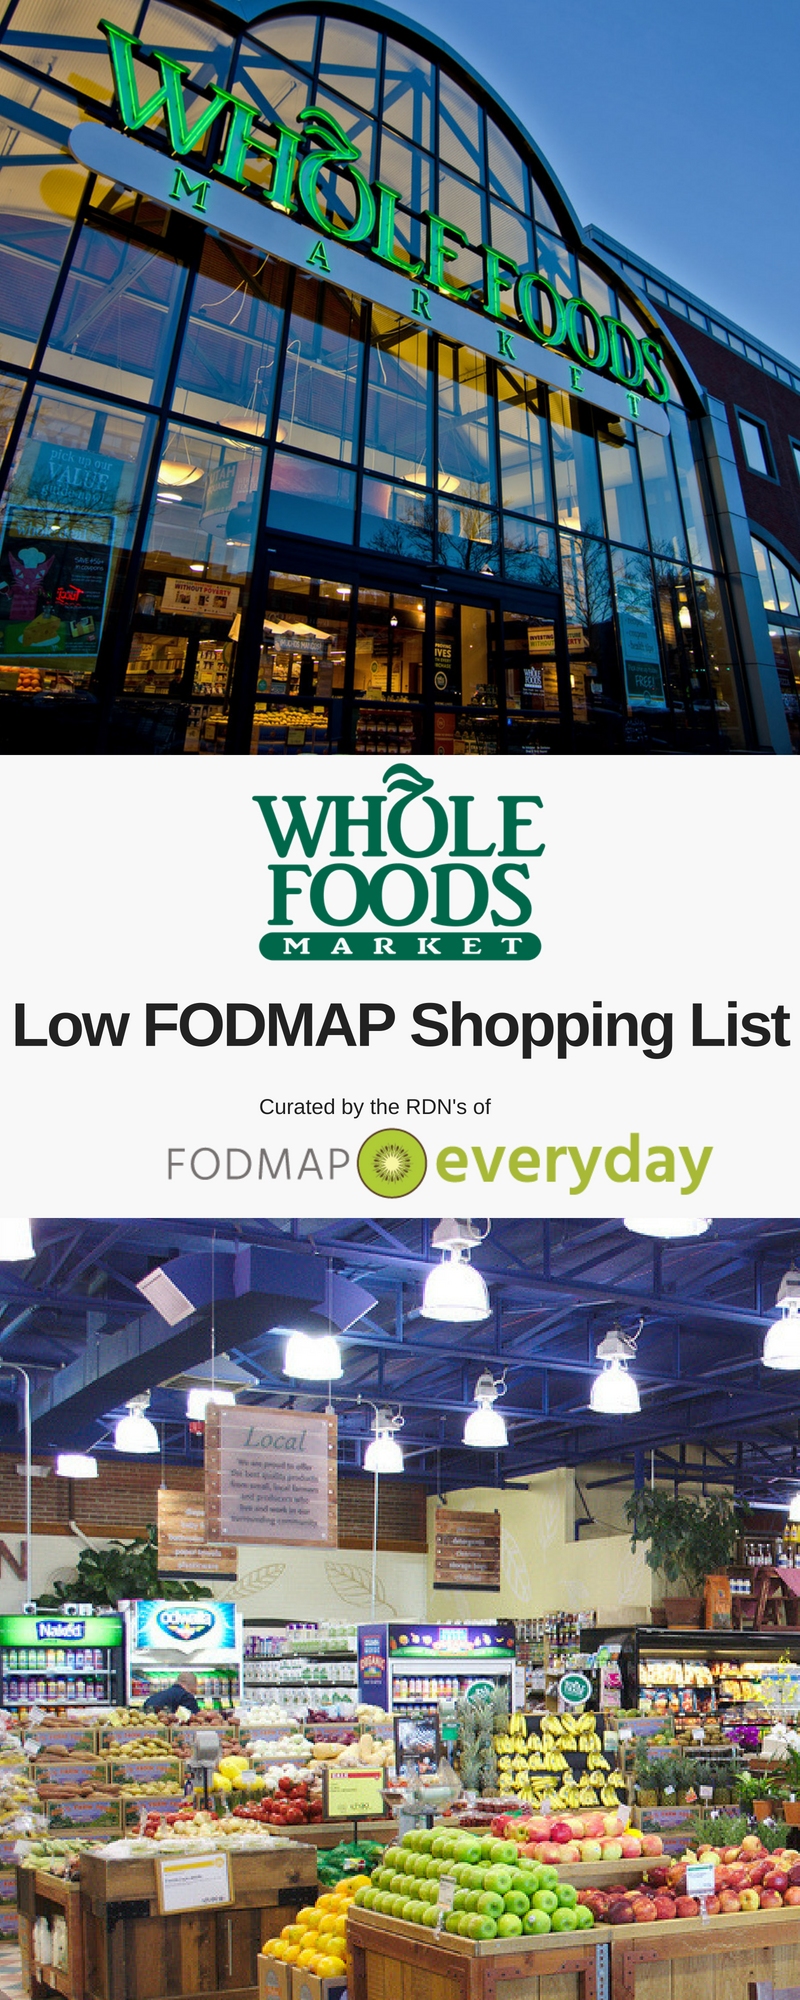 Whole Foods Market Low FODMAP Shopping List | Low FODMAP Recipes